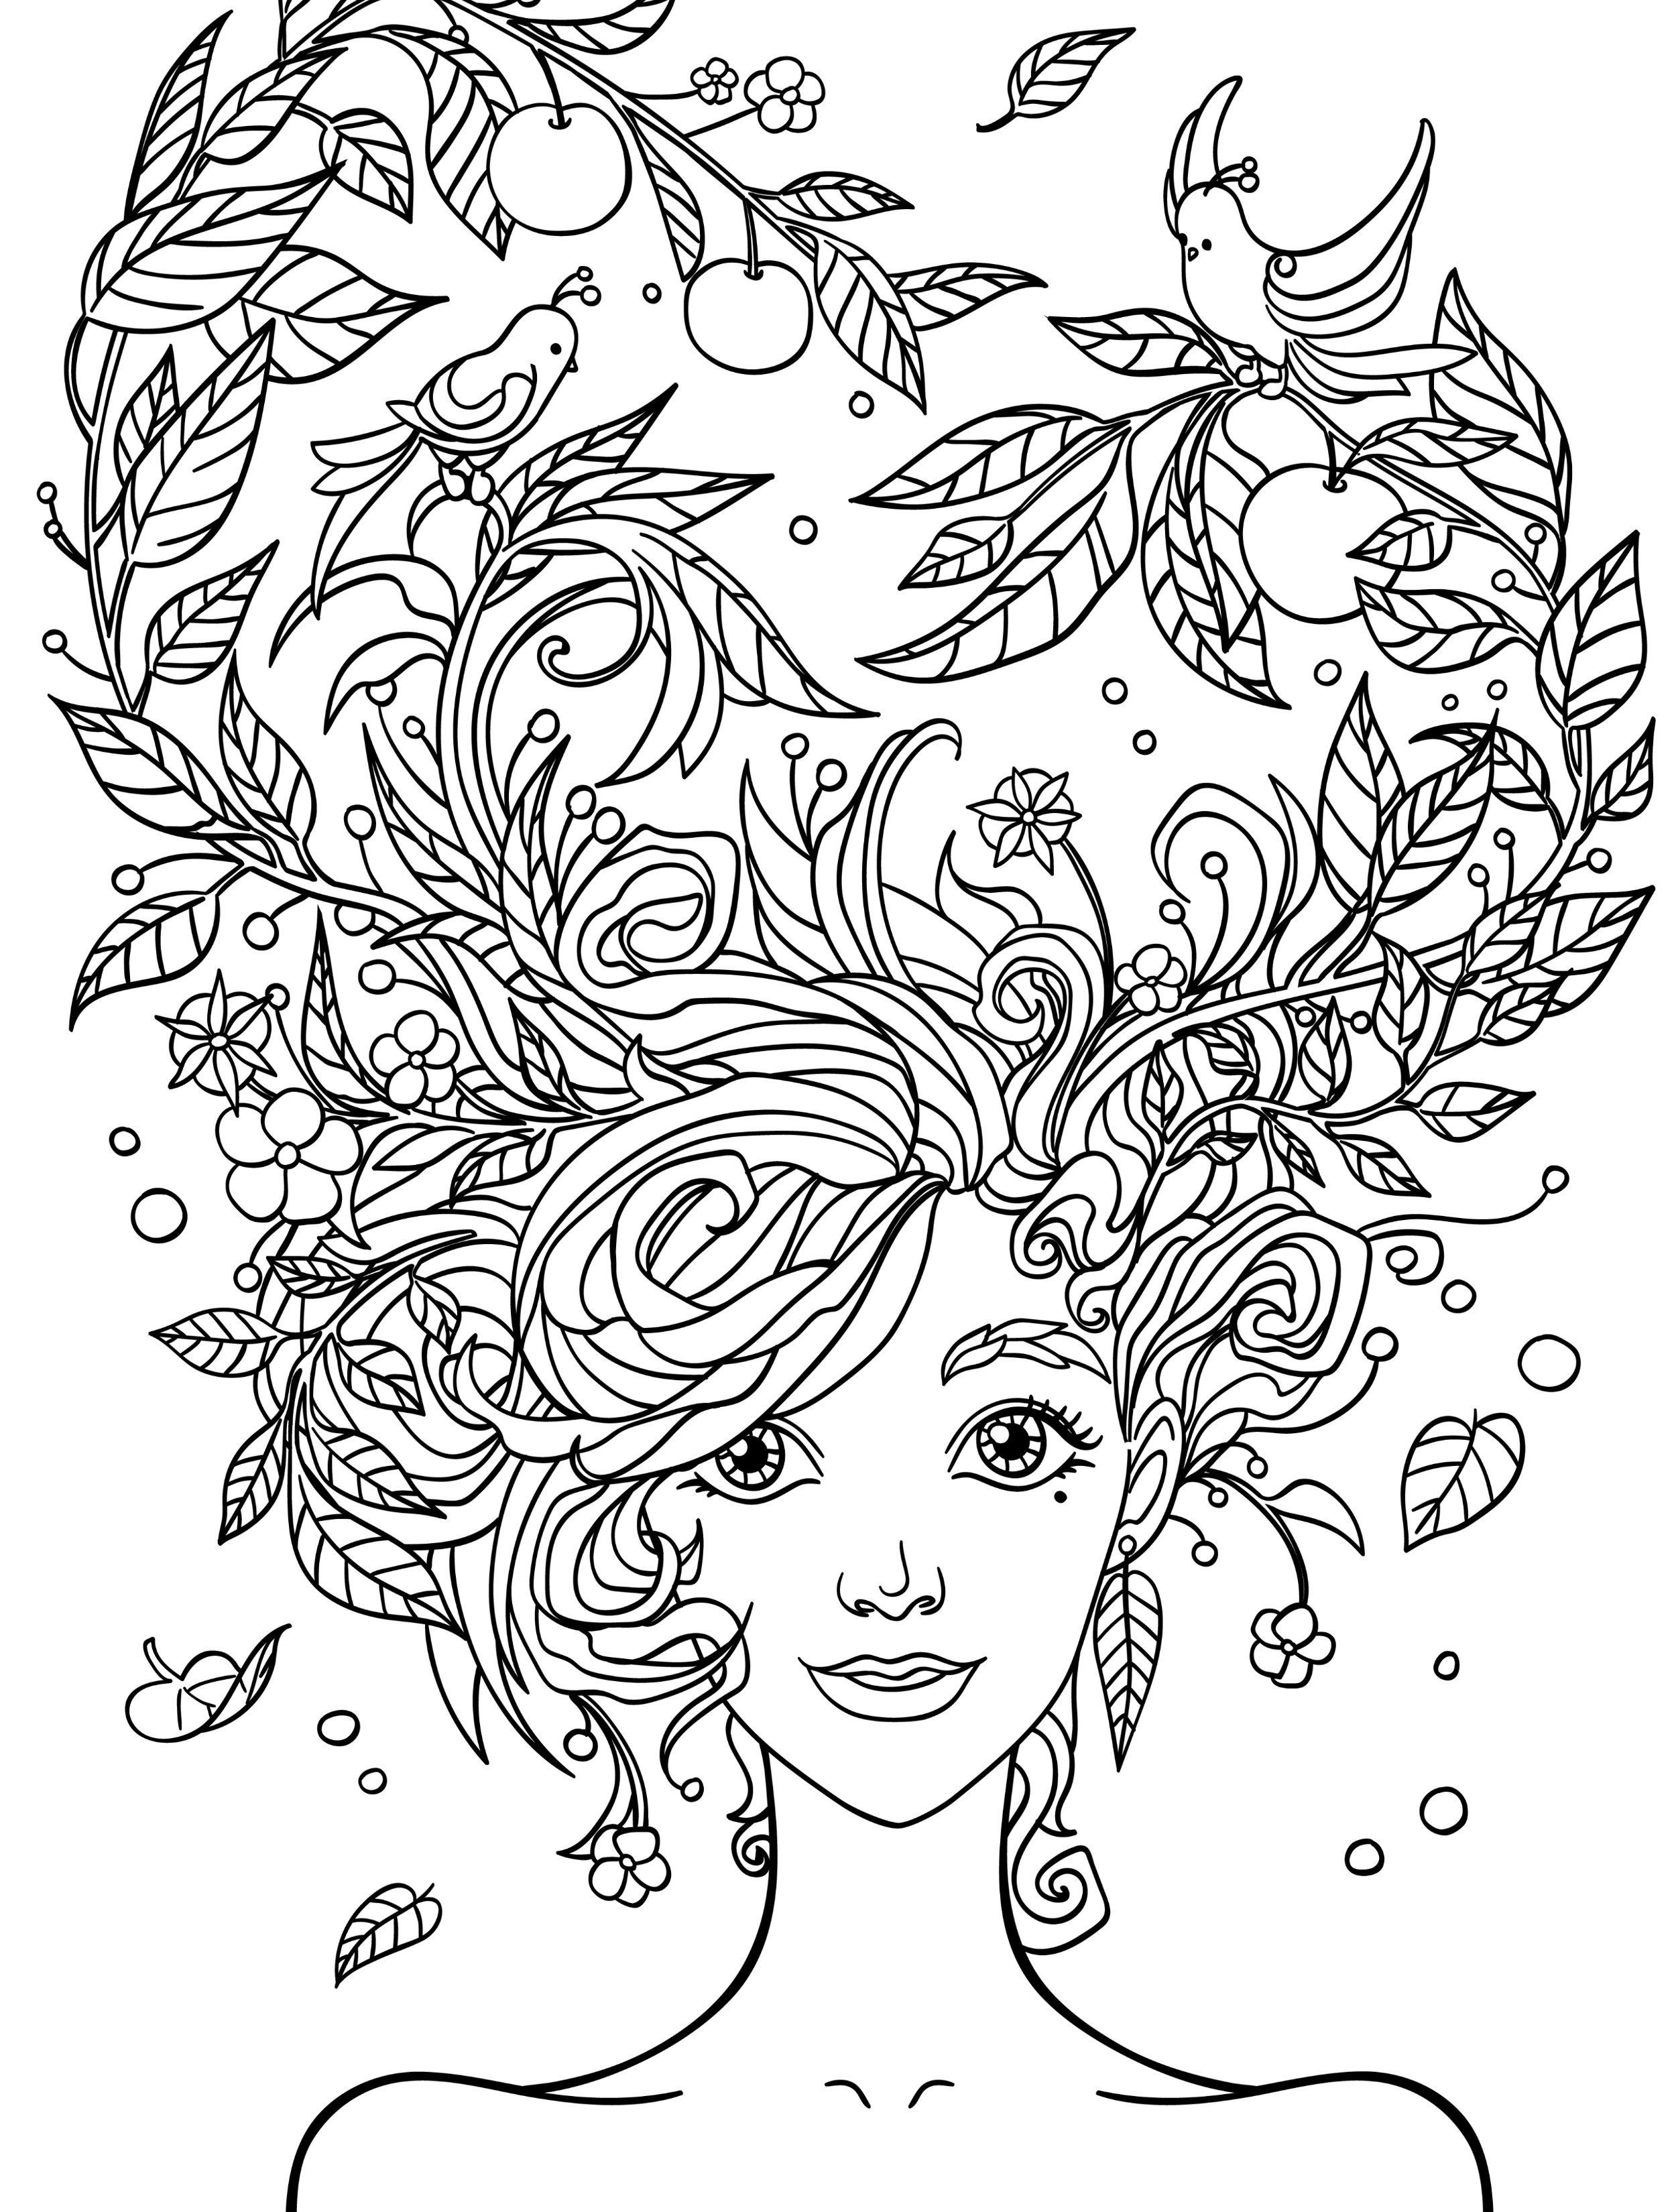 Pretty Coloring Pages For Adults Free Printable | People Coloring - Free Printable Coloring Cards For Adults